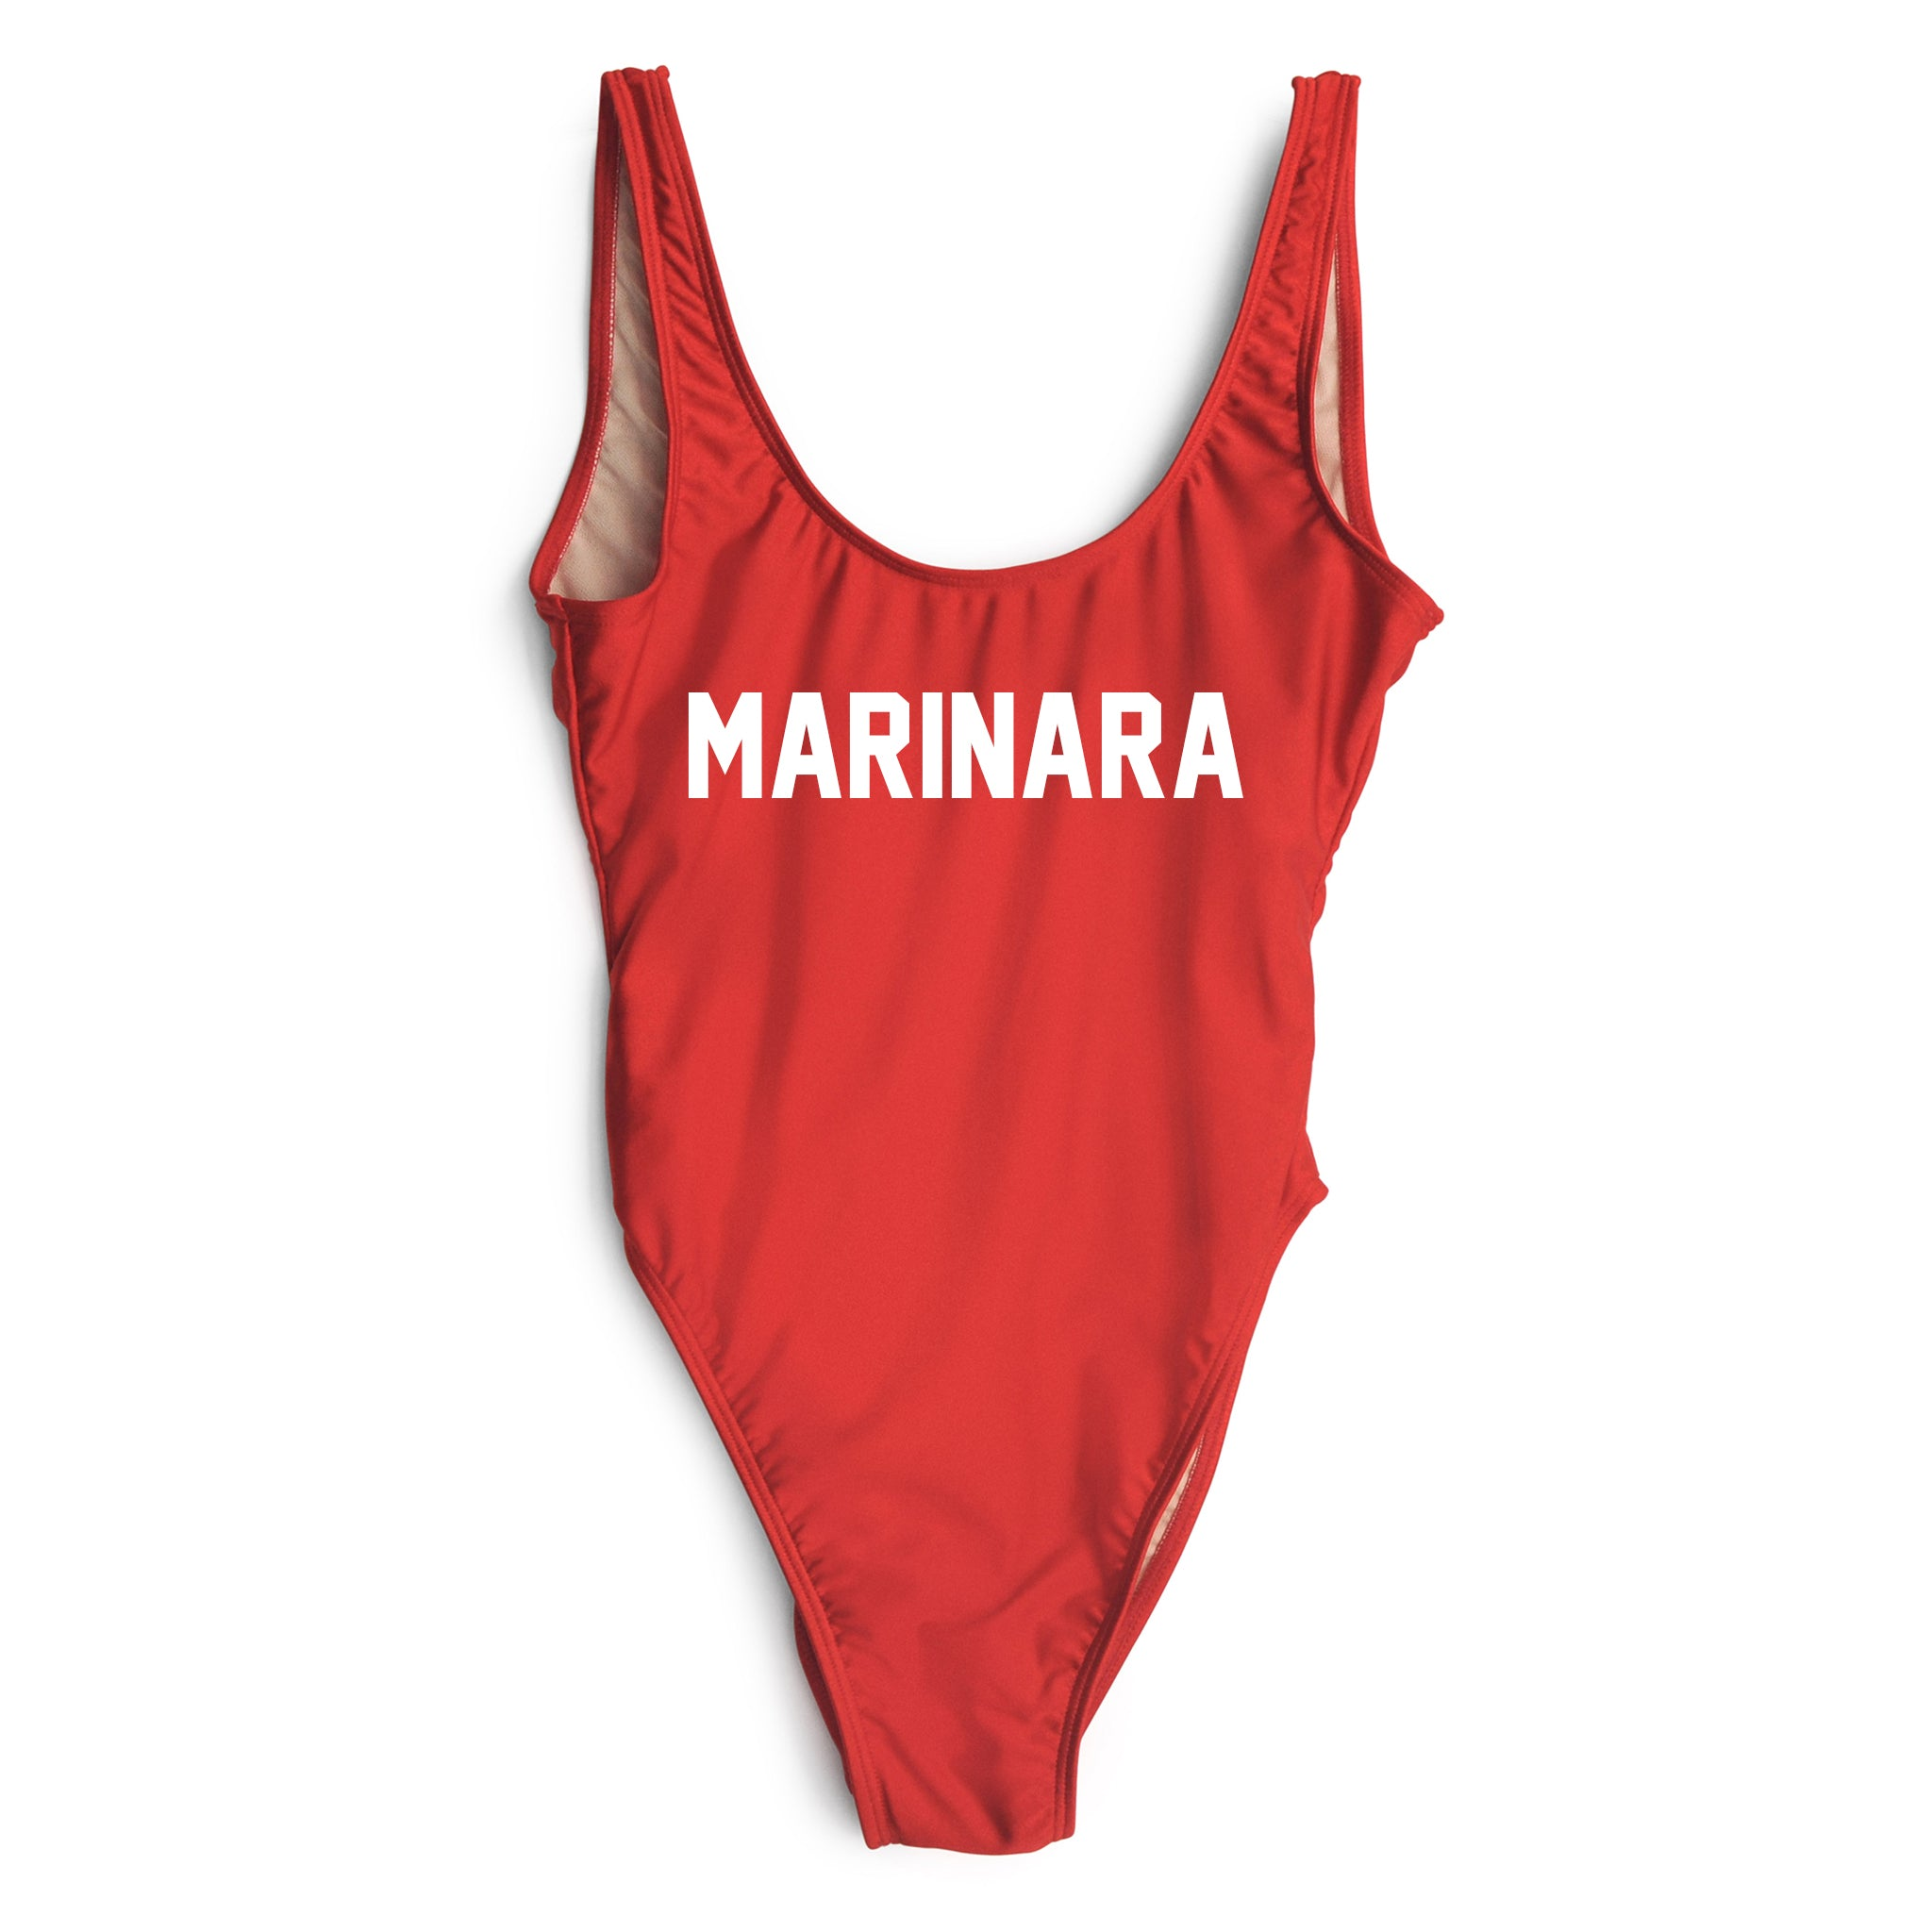 MARINARA [SWIMSUIT]